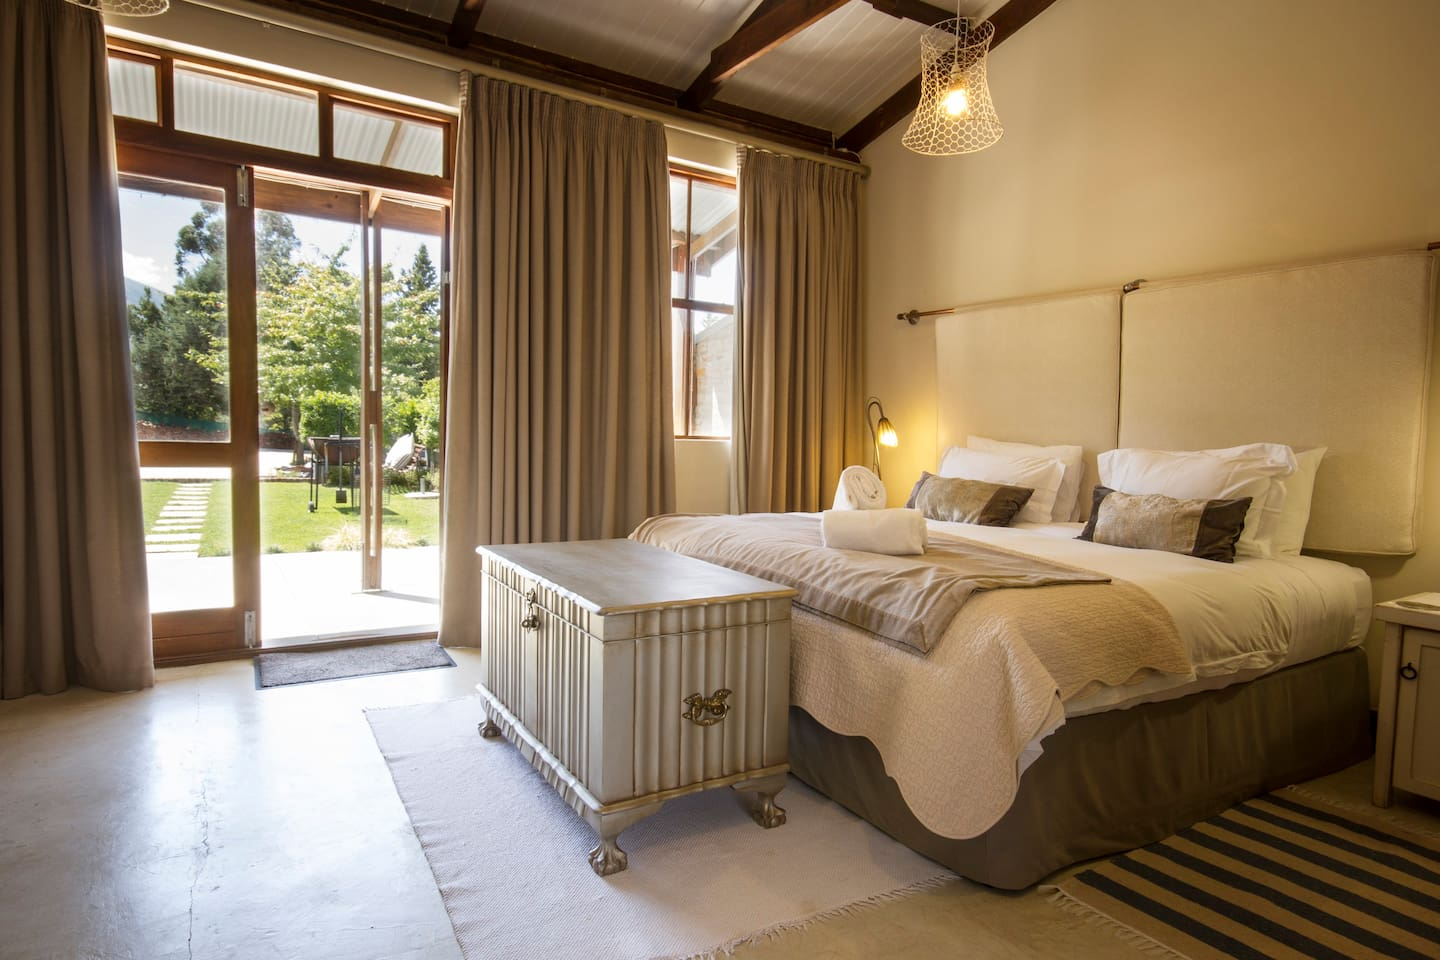 Luxury room with king bed (or twin if requested) Patio with garden views and bbq facilities